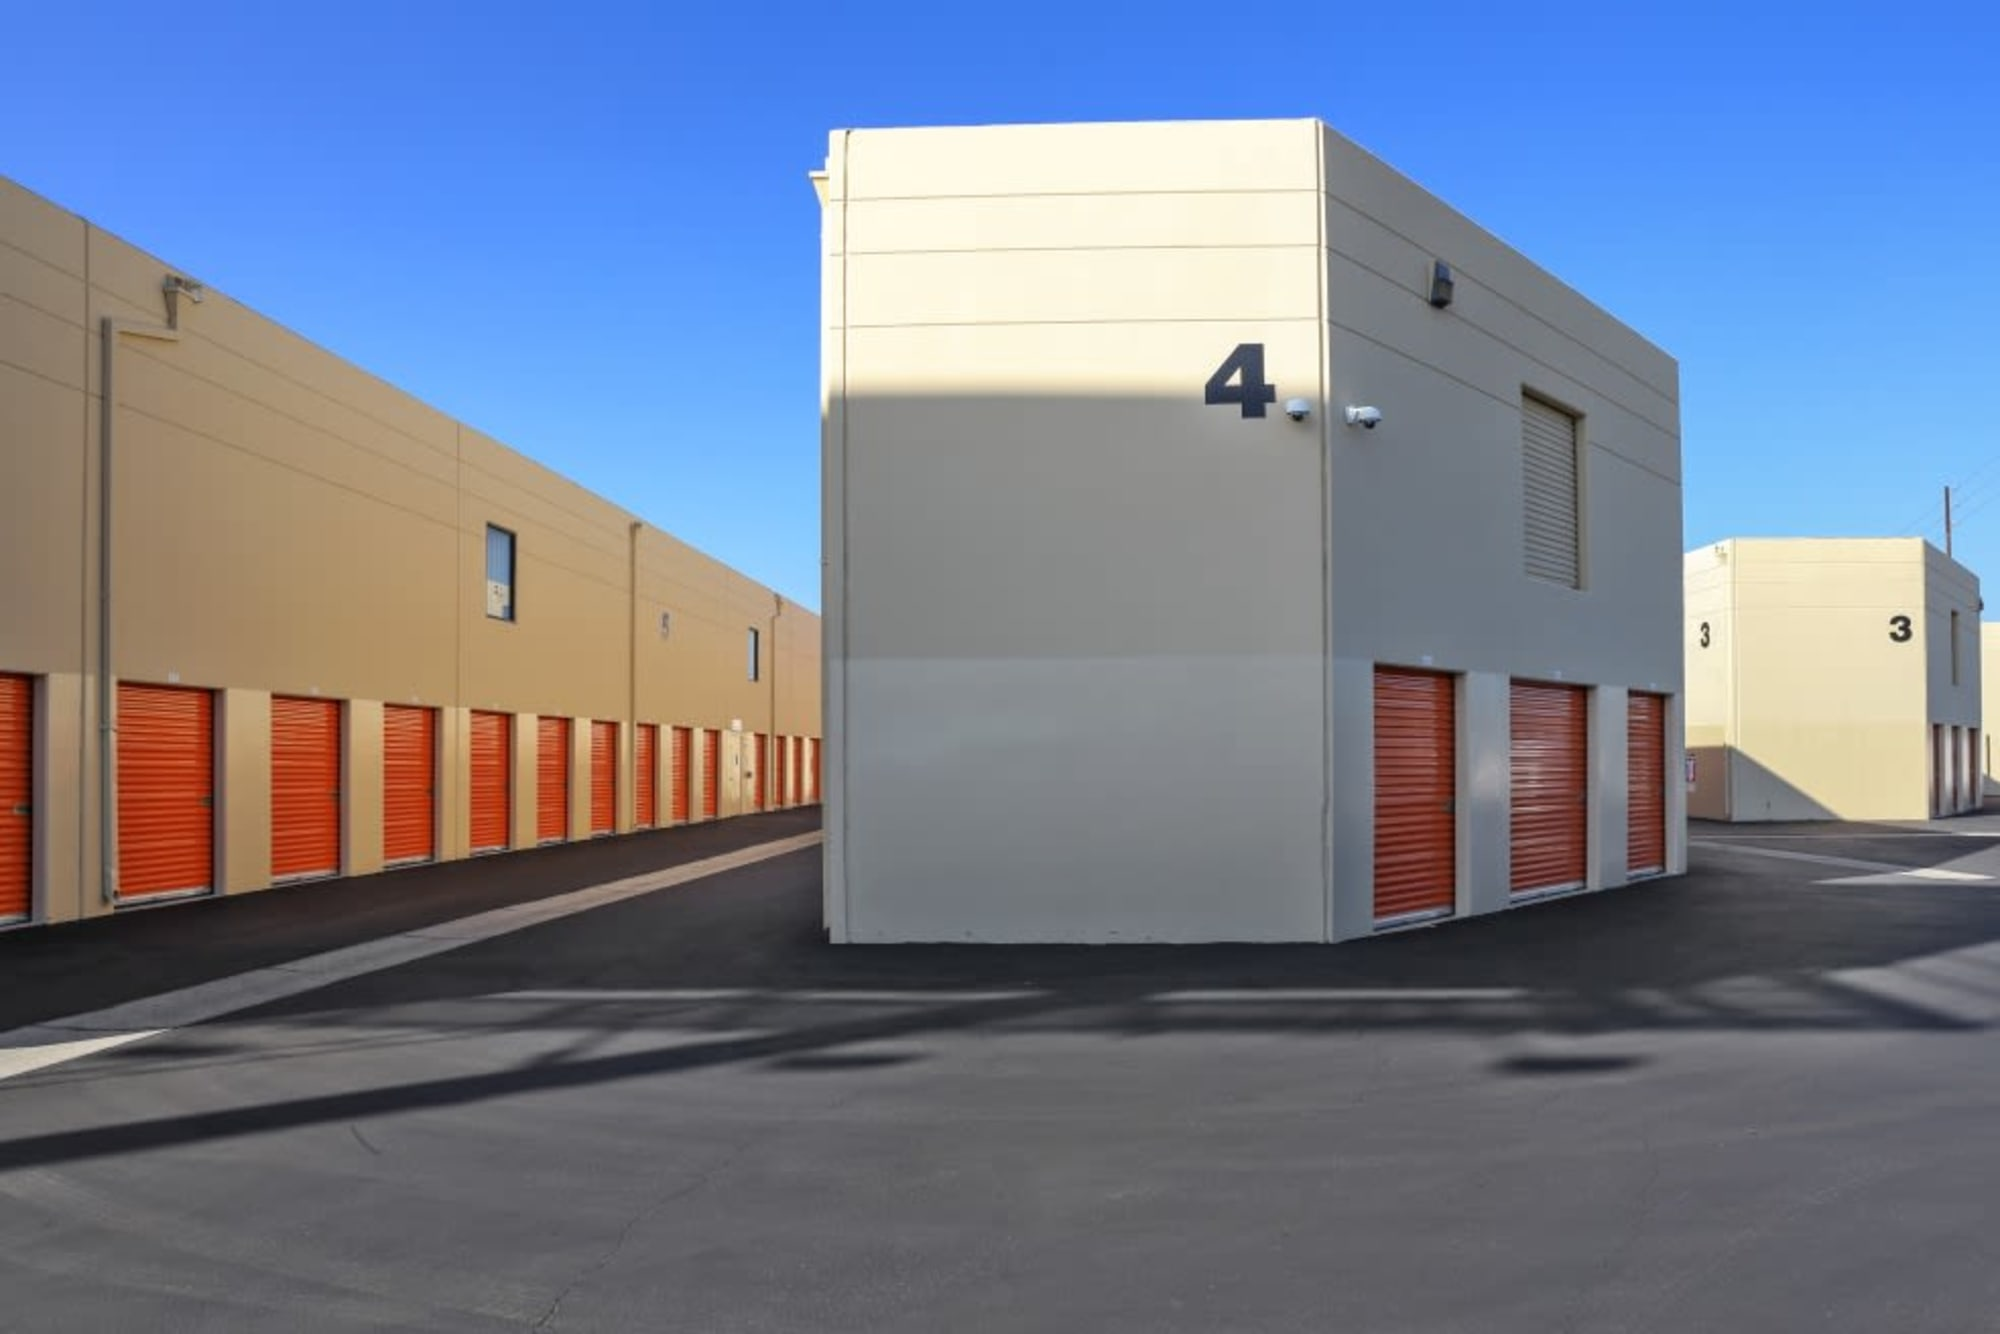 Convenient drive-up storage with wide pavement, at A-1 Self Storage in Fountain Valley, California